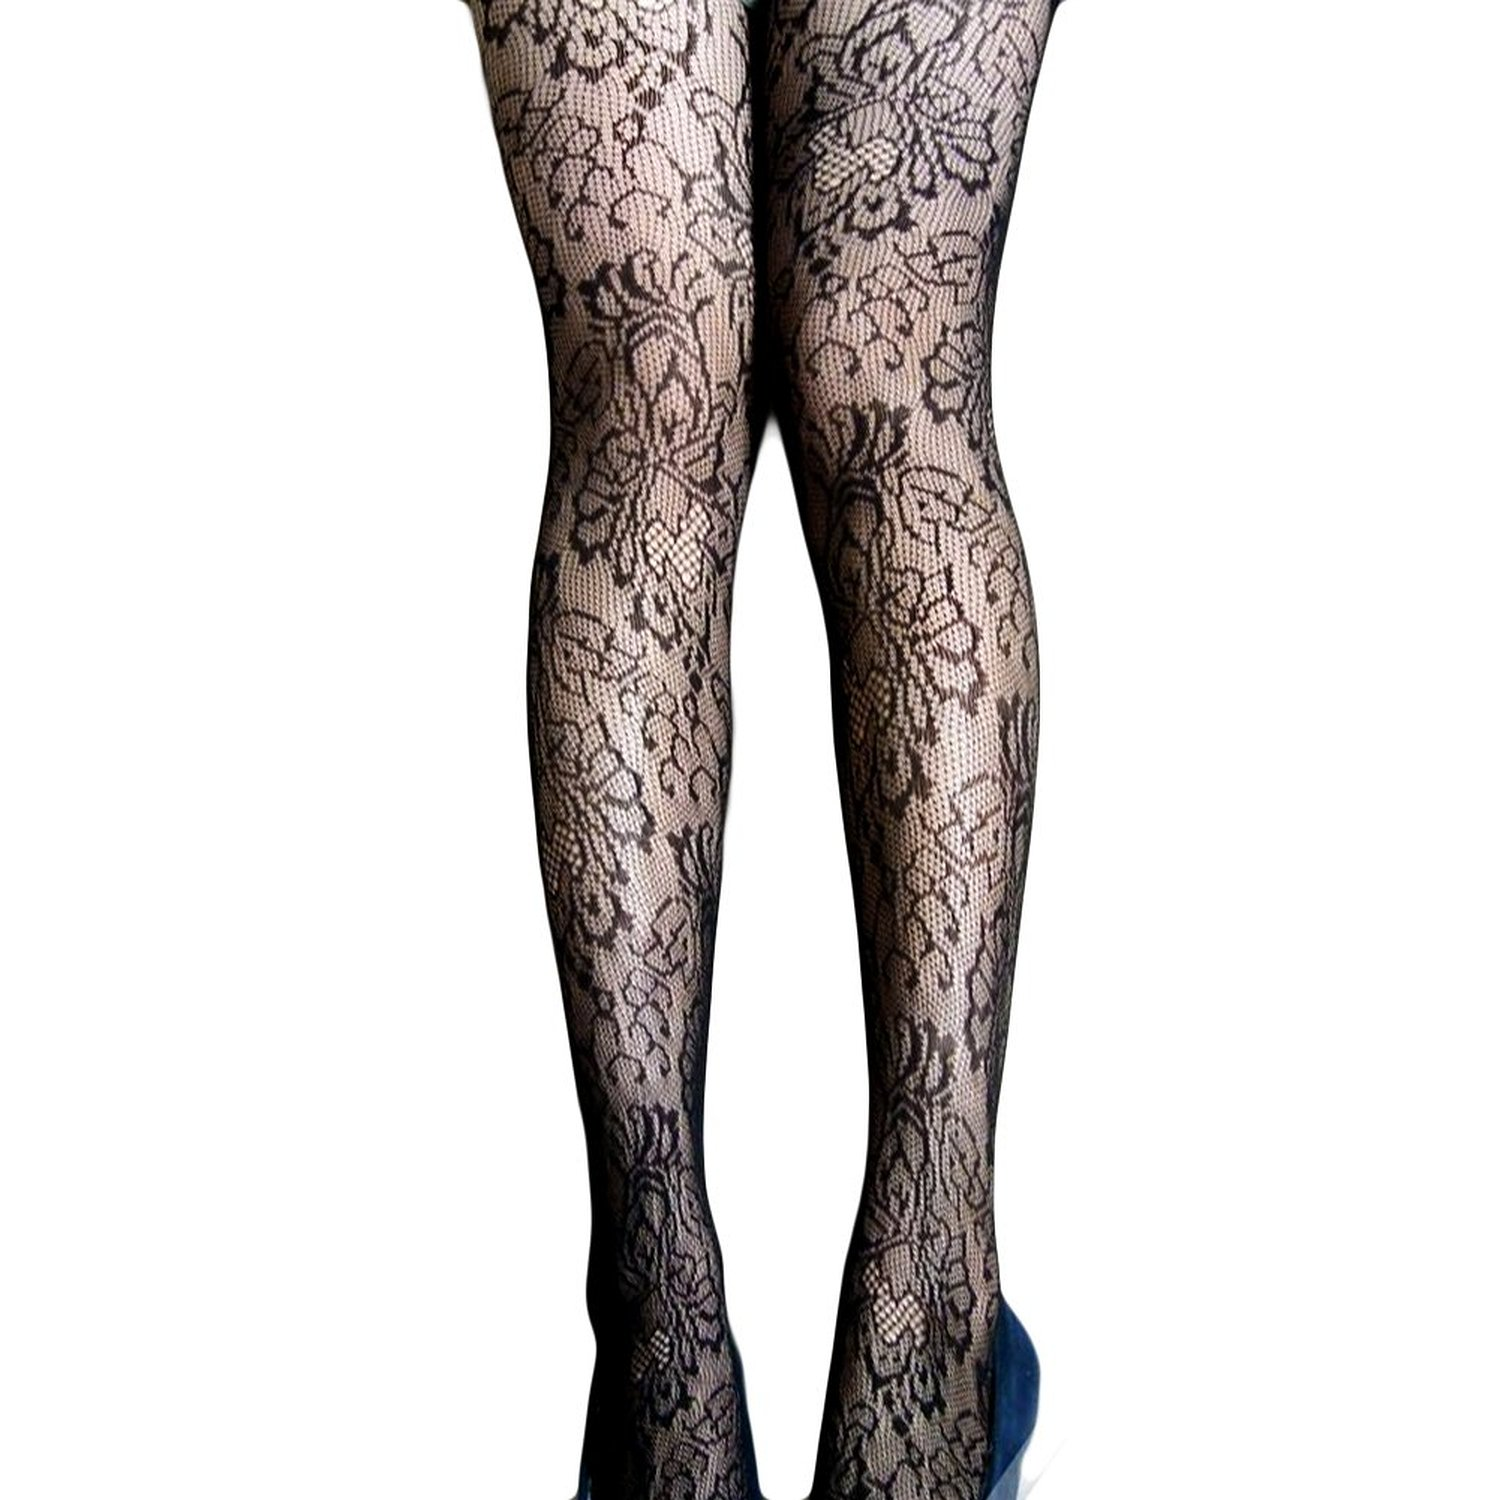 Locomo black floral flower pantyhose stocking fft171 at amazon women's clothing store: